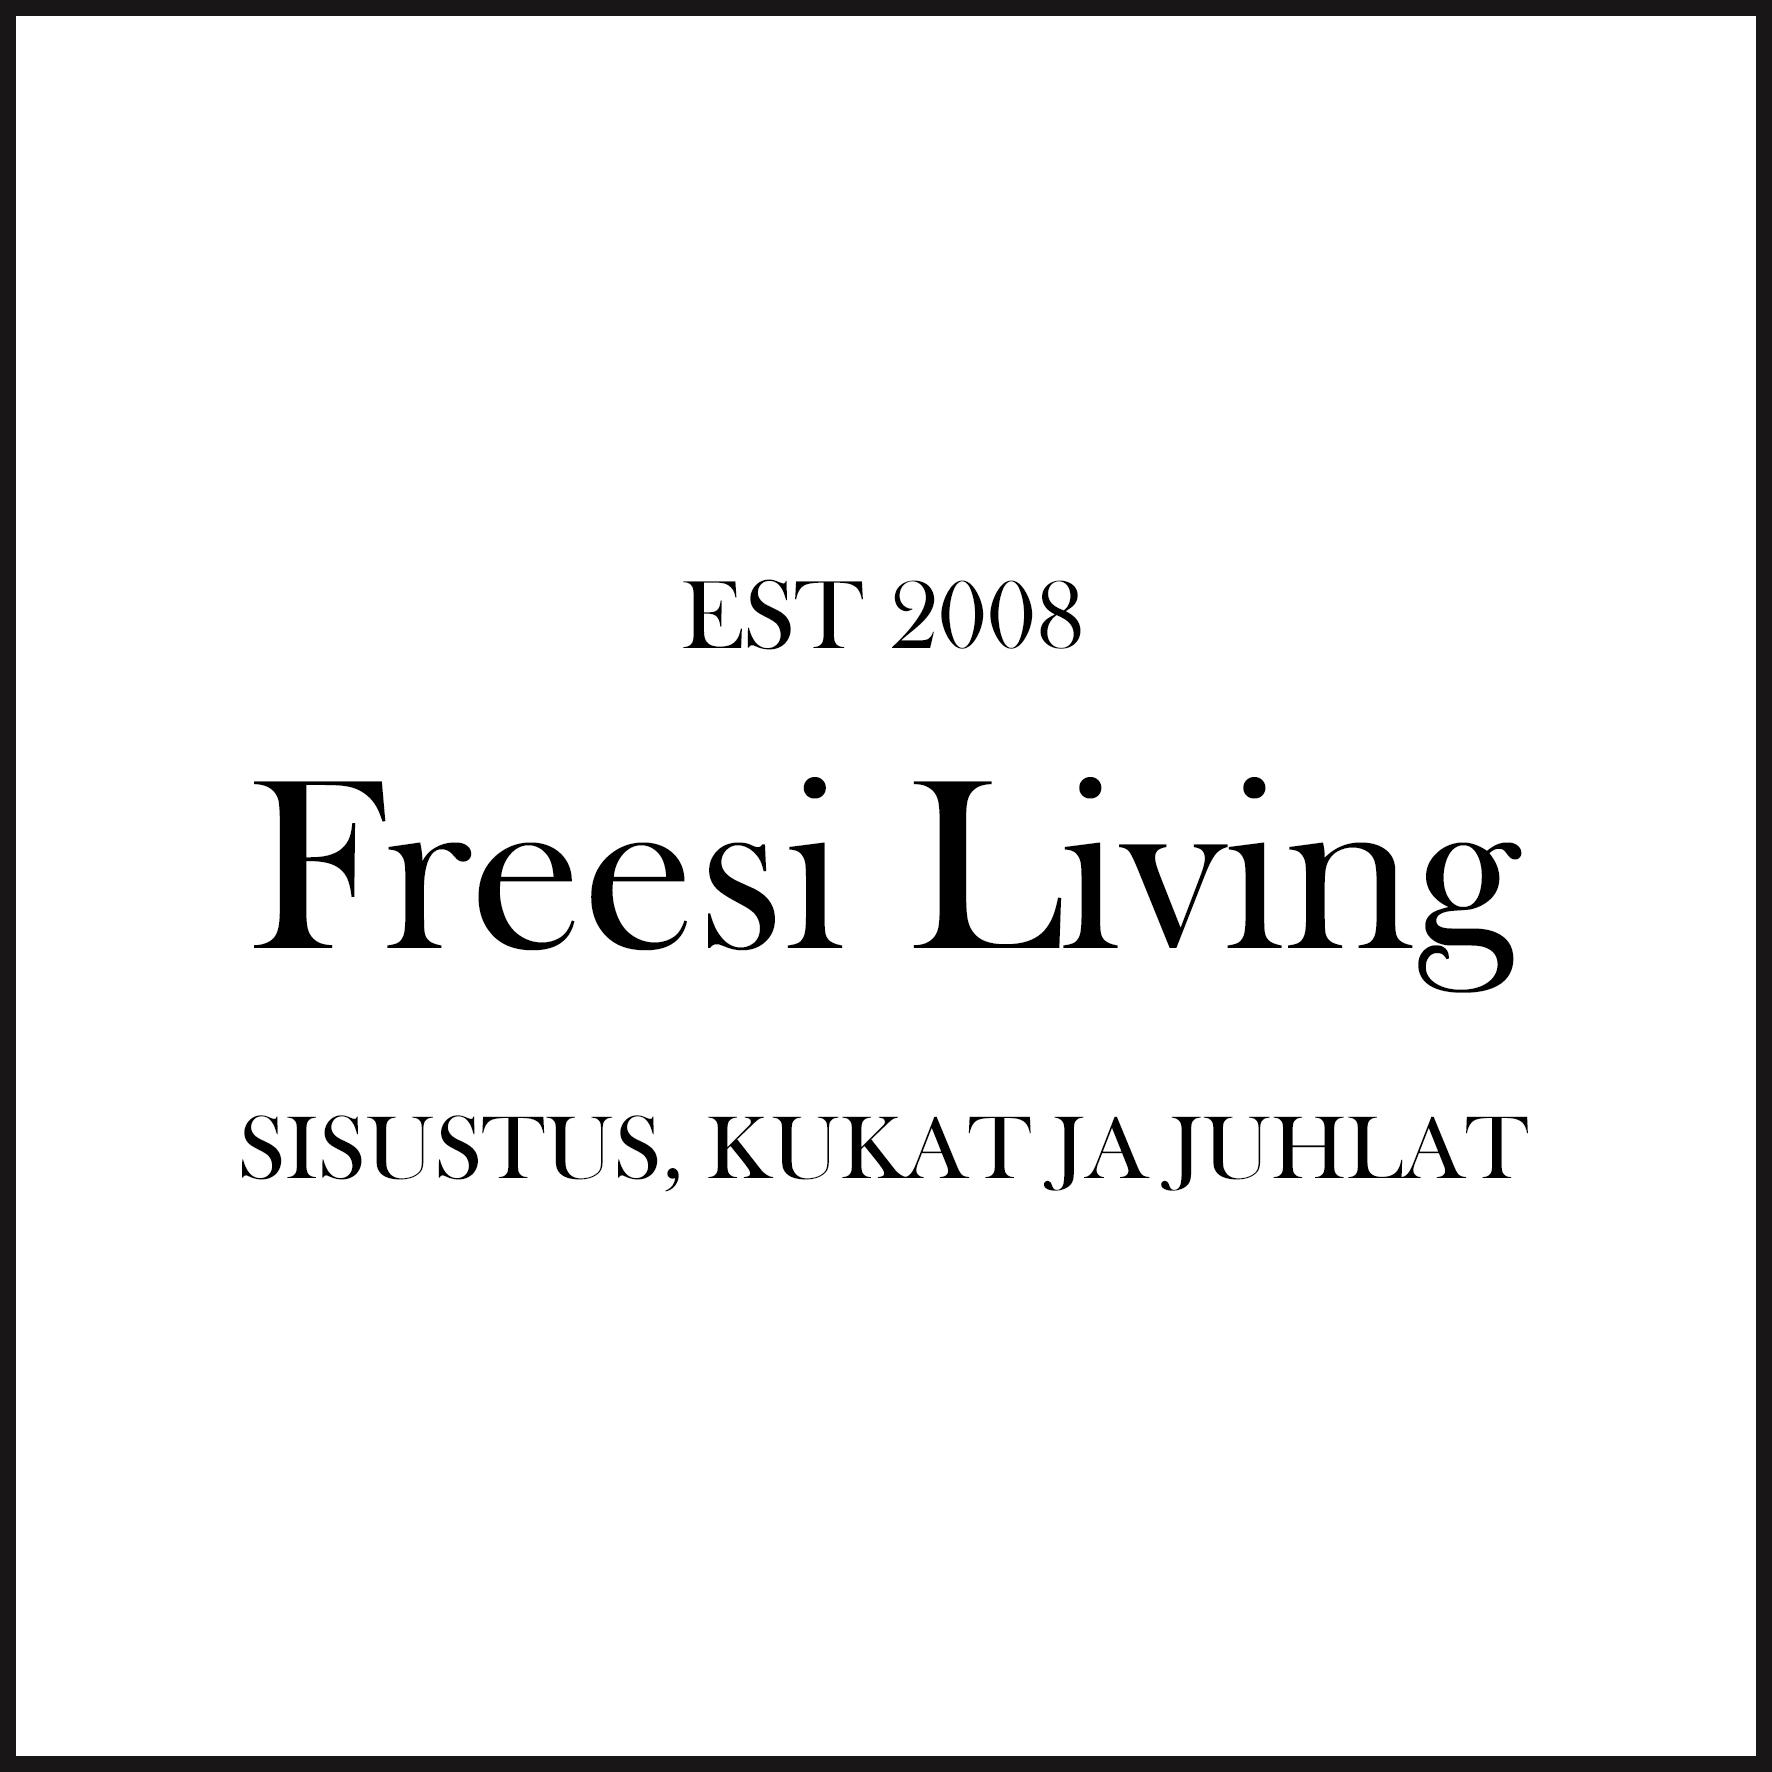 Freesiliving.fi